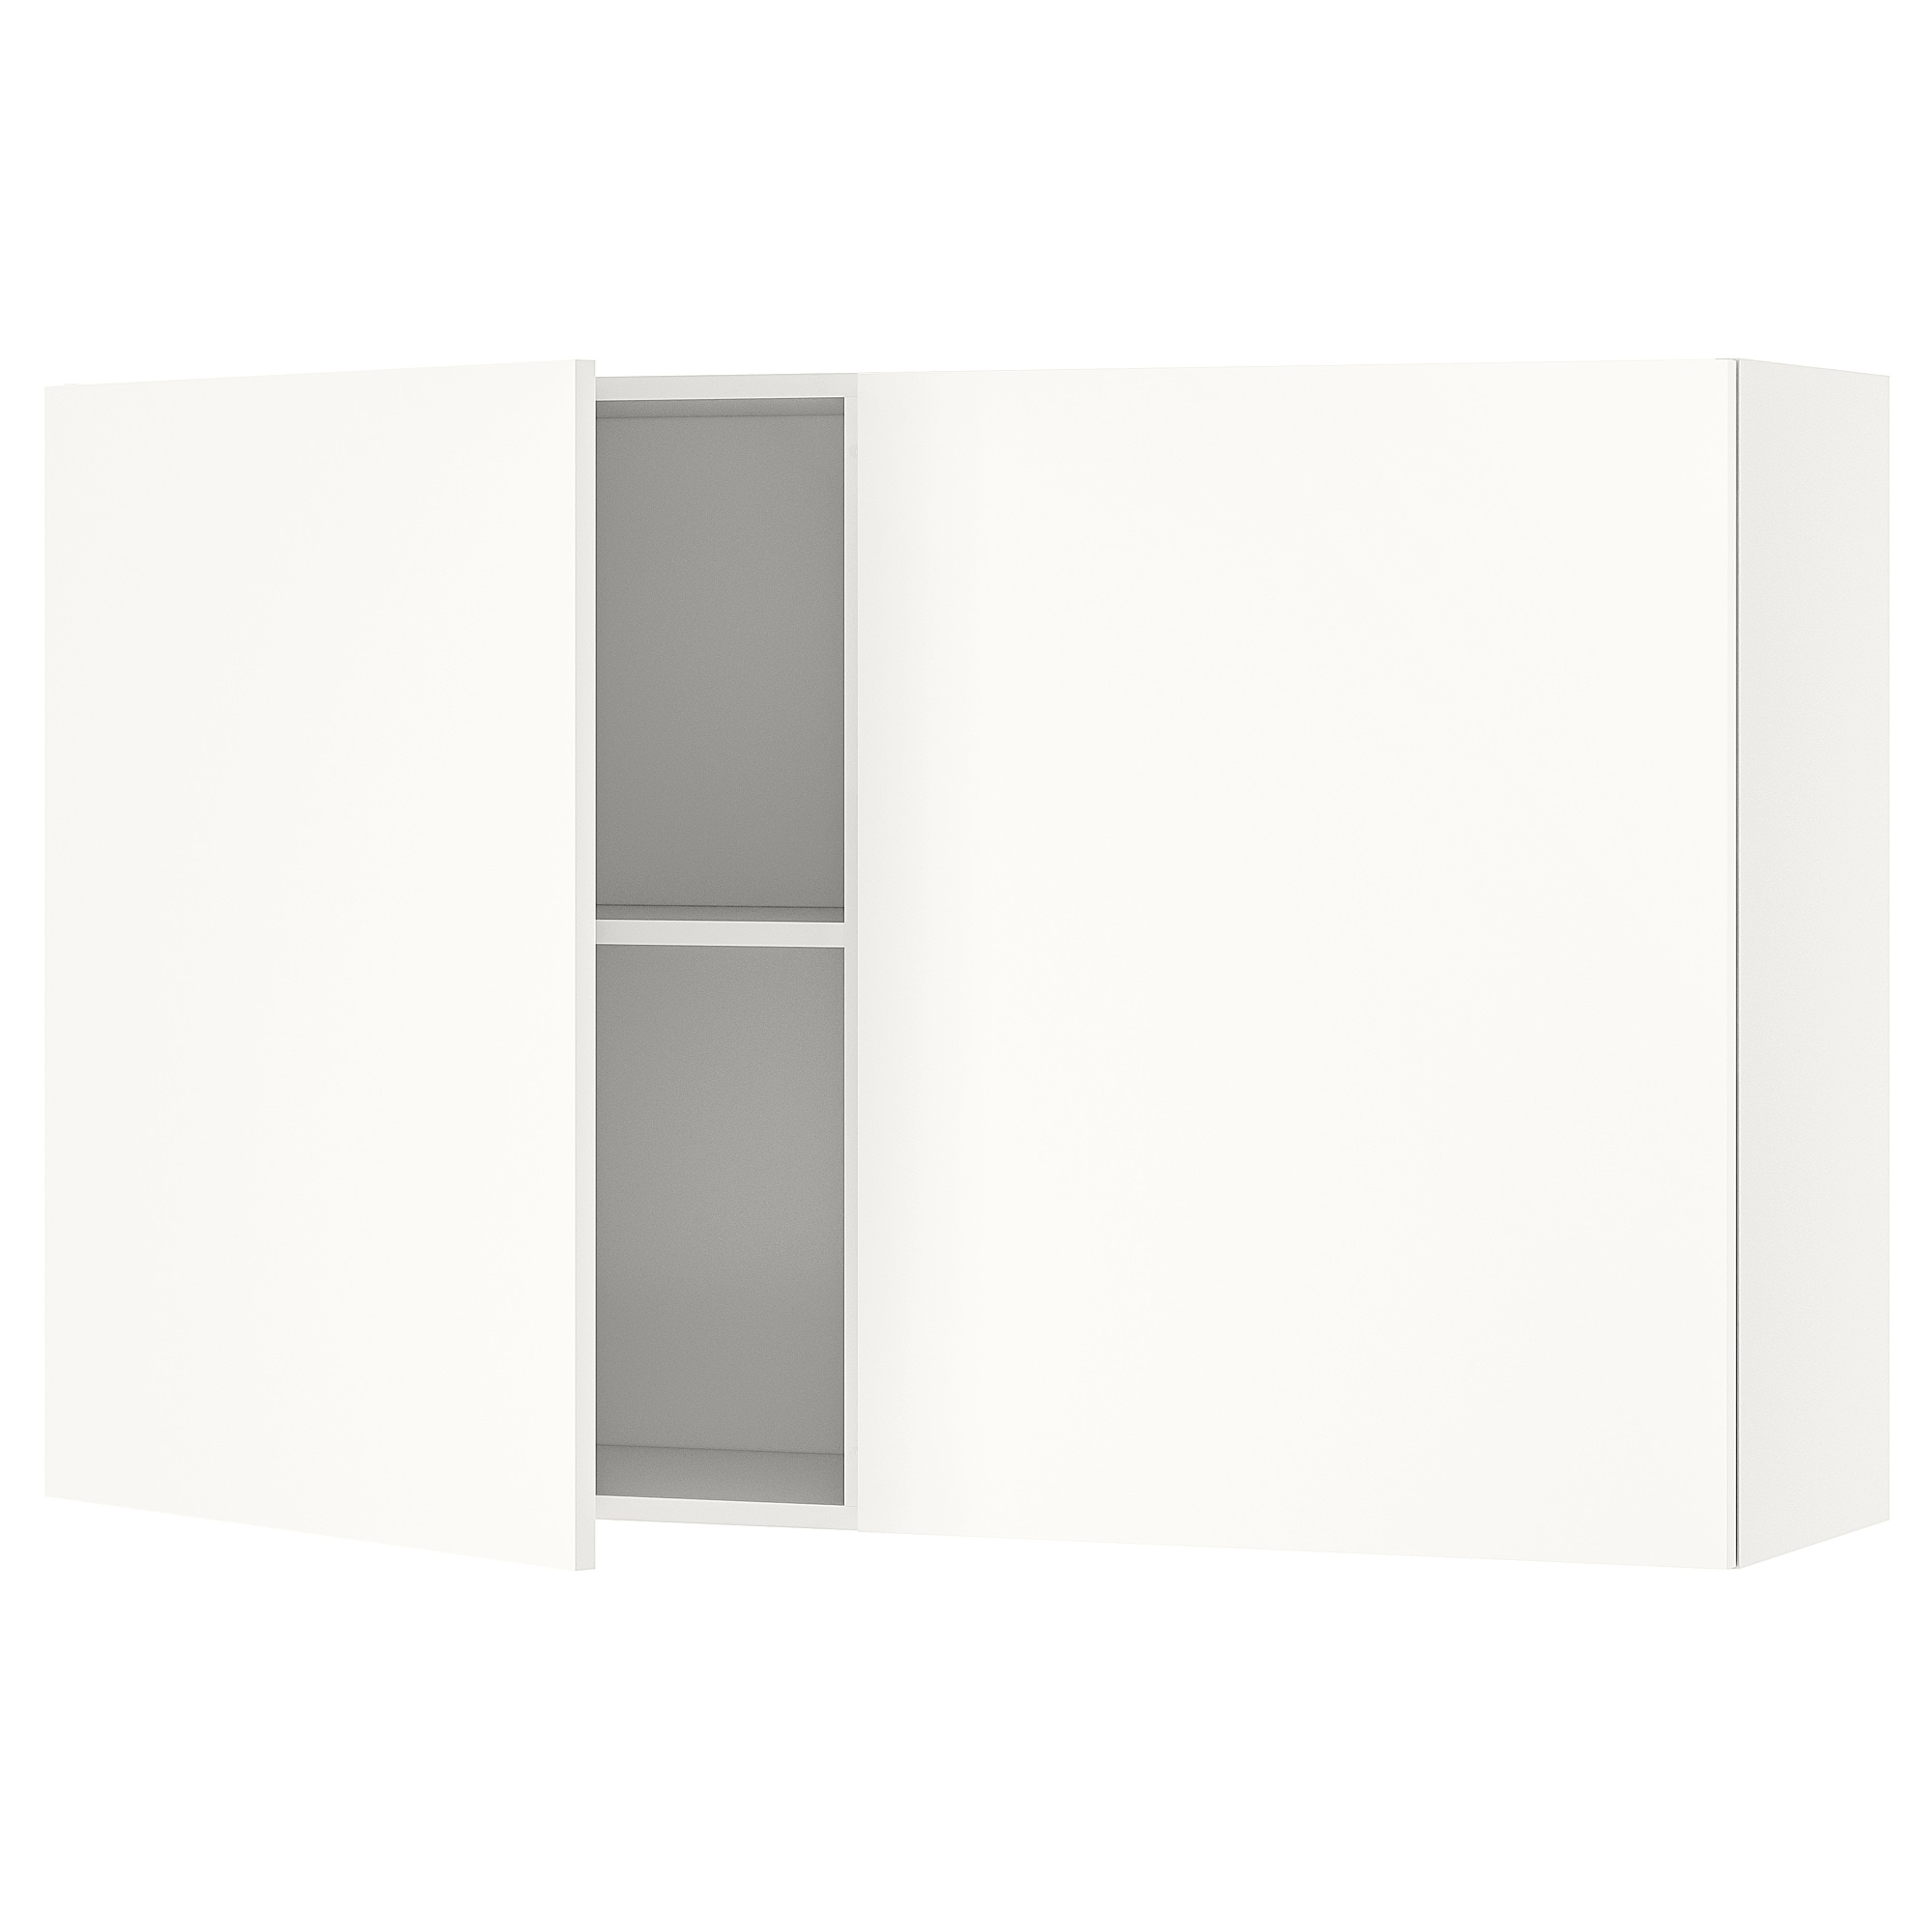 Merveilleux Wall Cabinet With Doors KNOXHULT White